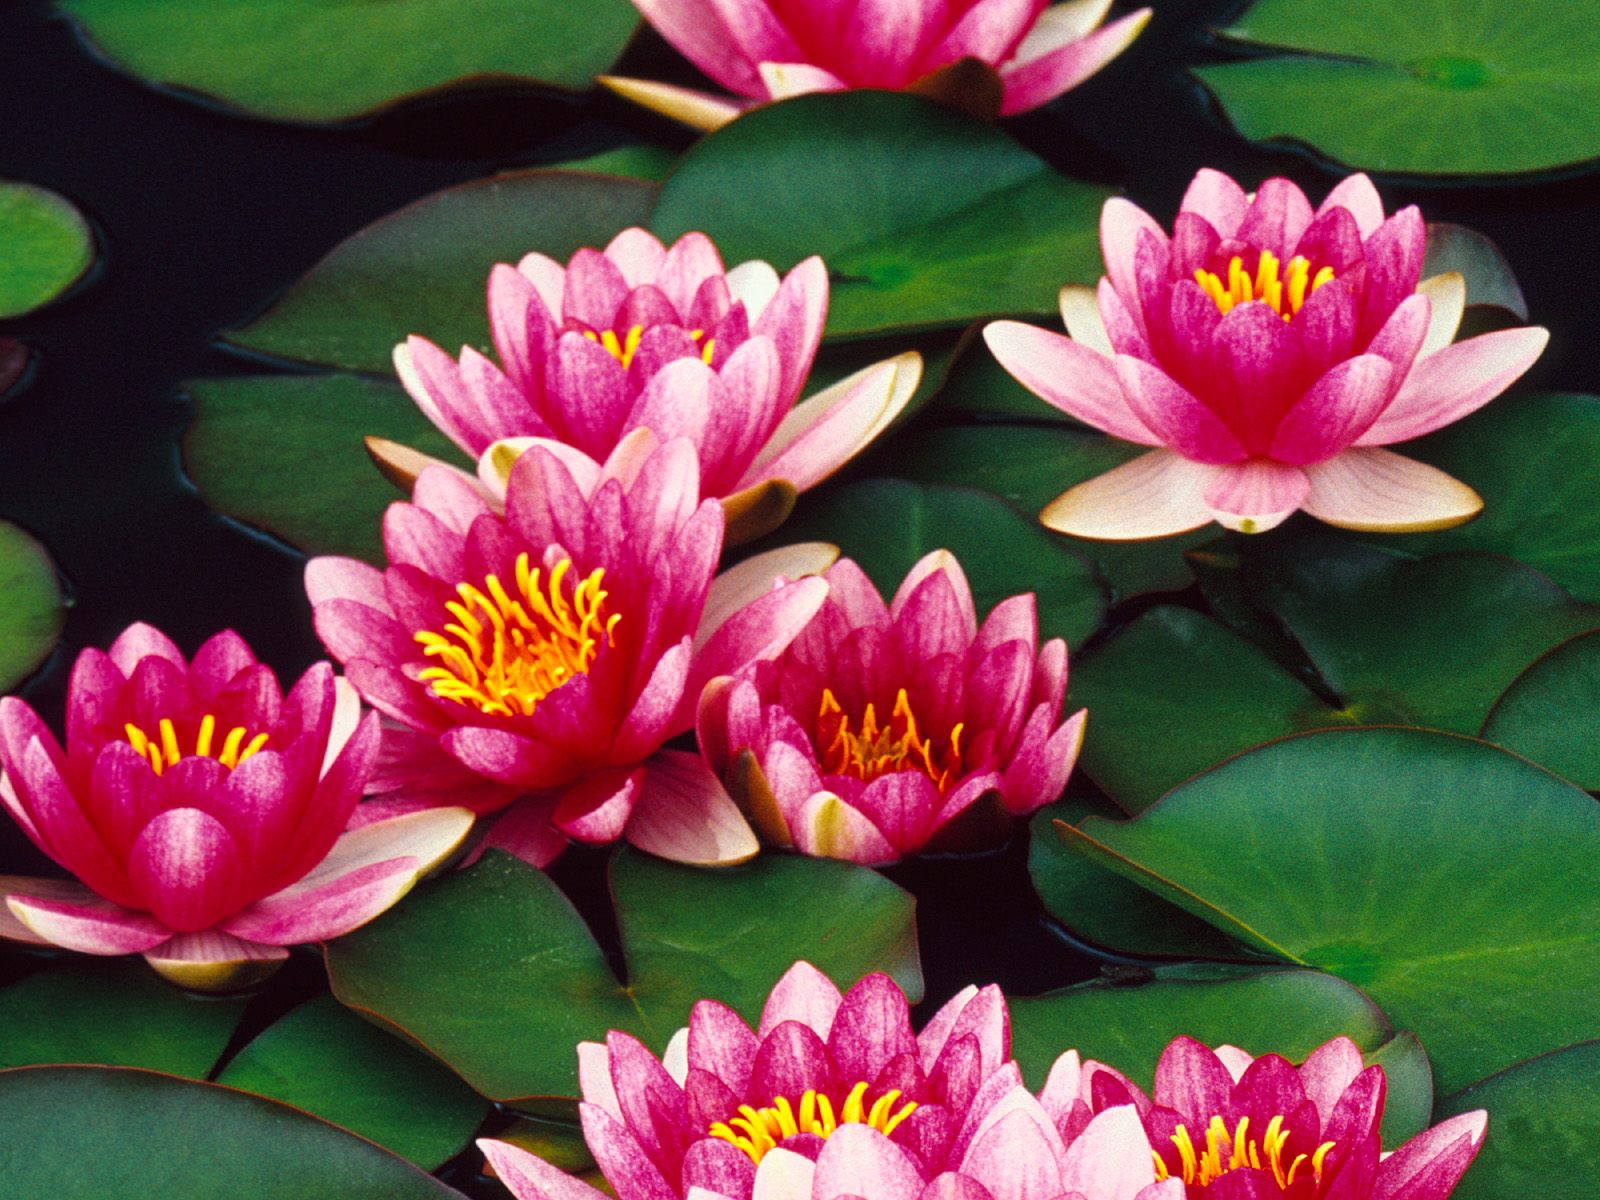 lilly flower types hd wallpaper 1600x1200 free download